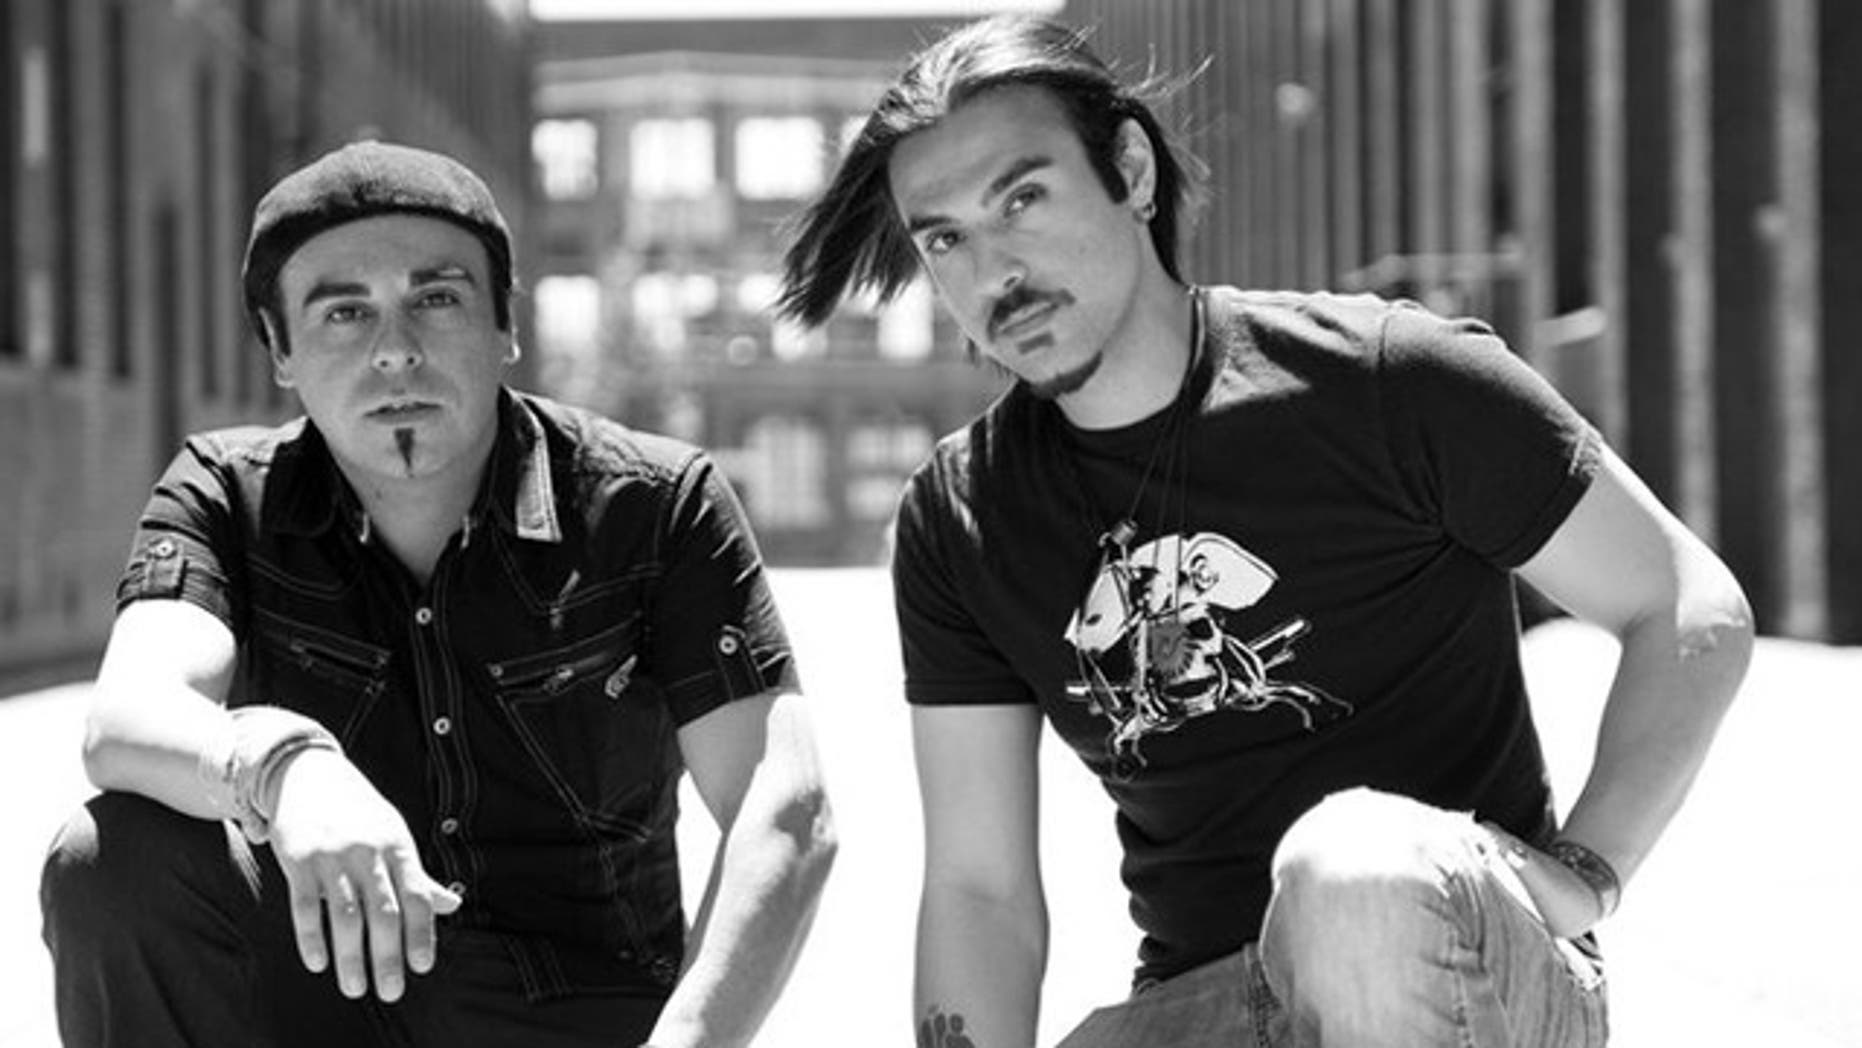 Sohl, 35, left, is a co-founder and bassist for the band Blurred Vision, while his 28-year-old brother and co-founder Sepp, right, plays guitar and is the band's lead singer.